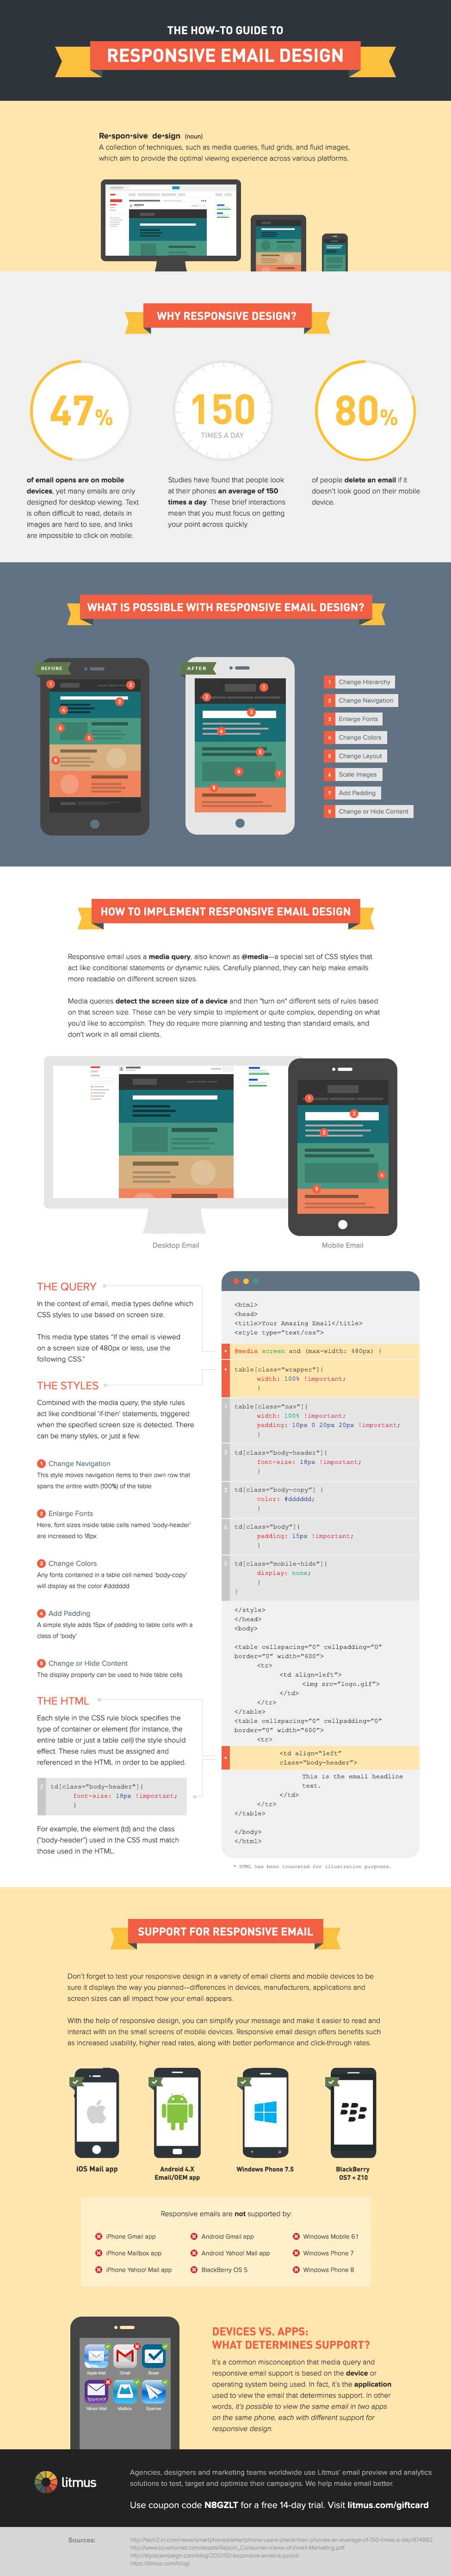 how to responsive email design infographic